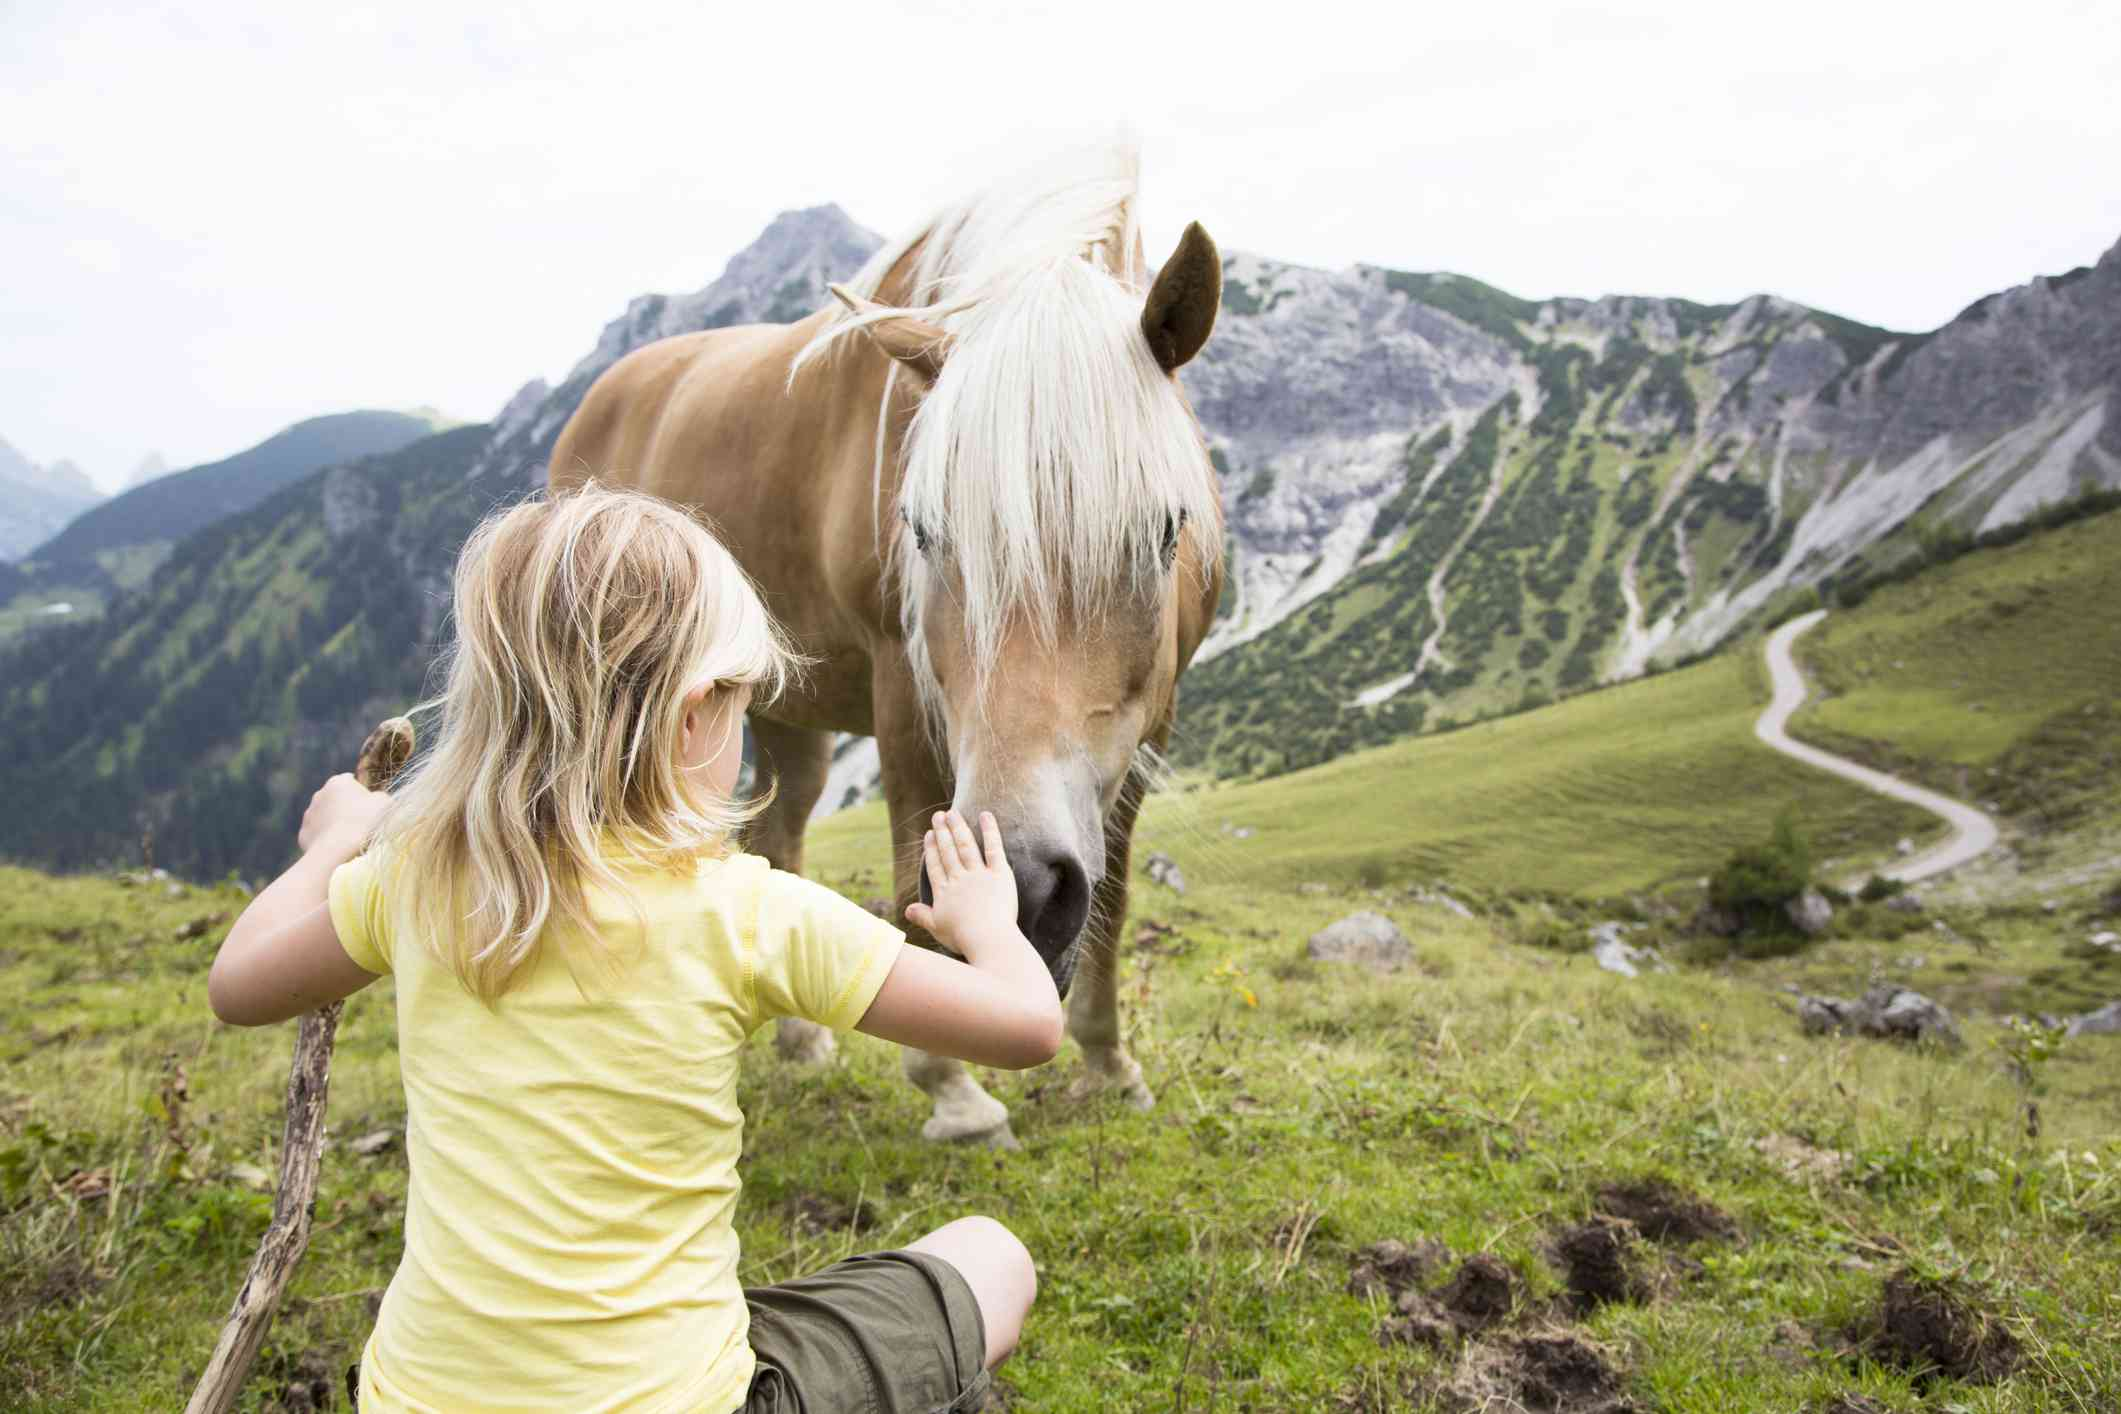 blonde child in yellow t-shirt patting the nose of a brown horse in a mountain landscape